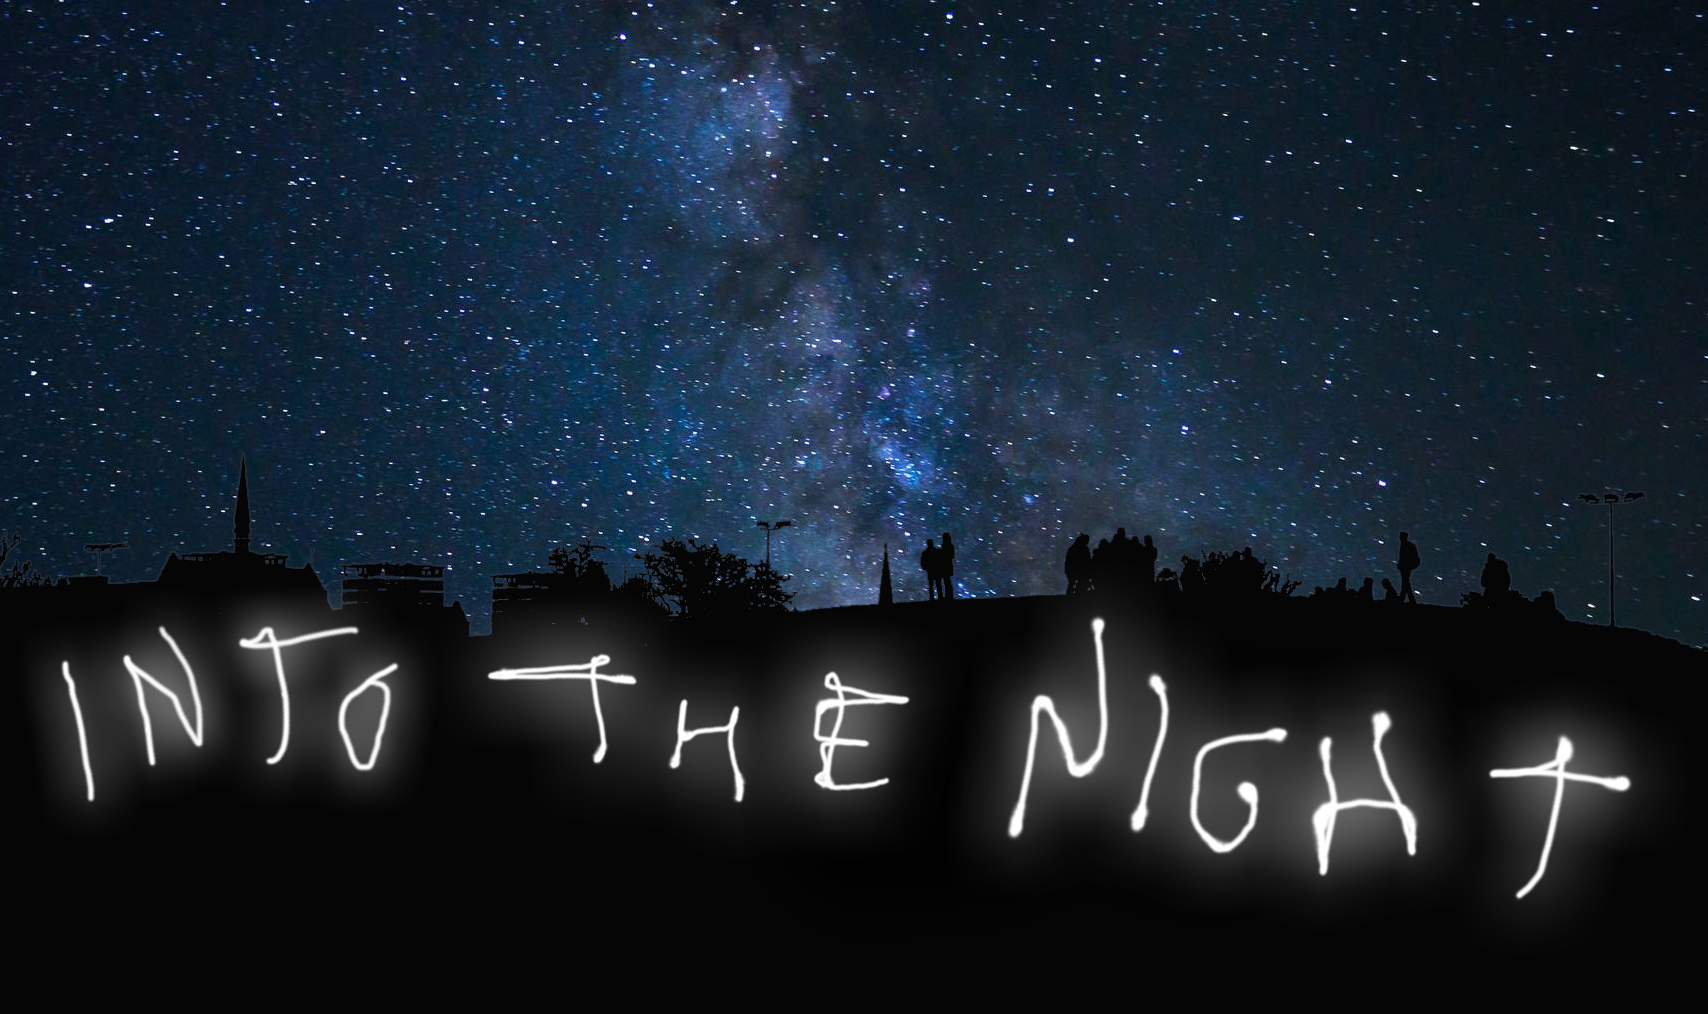 Learn more about the stars, night life and light pollution.